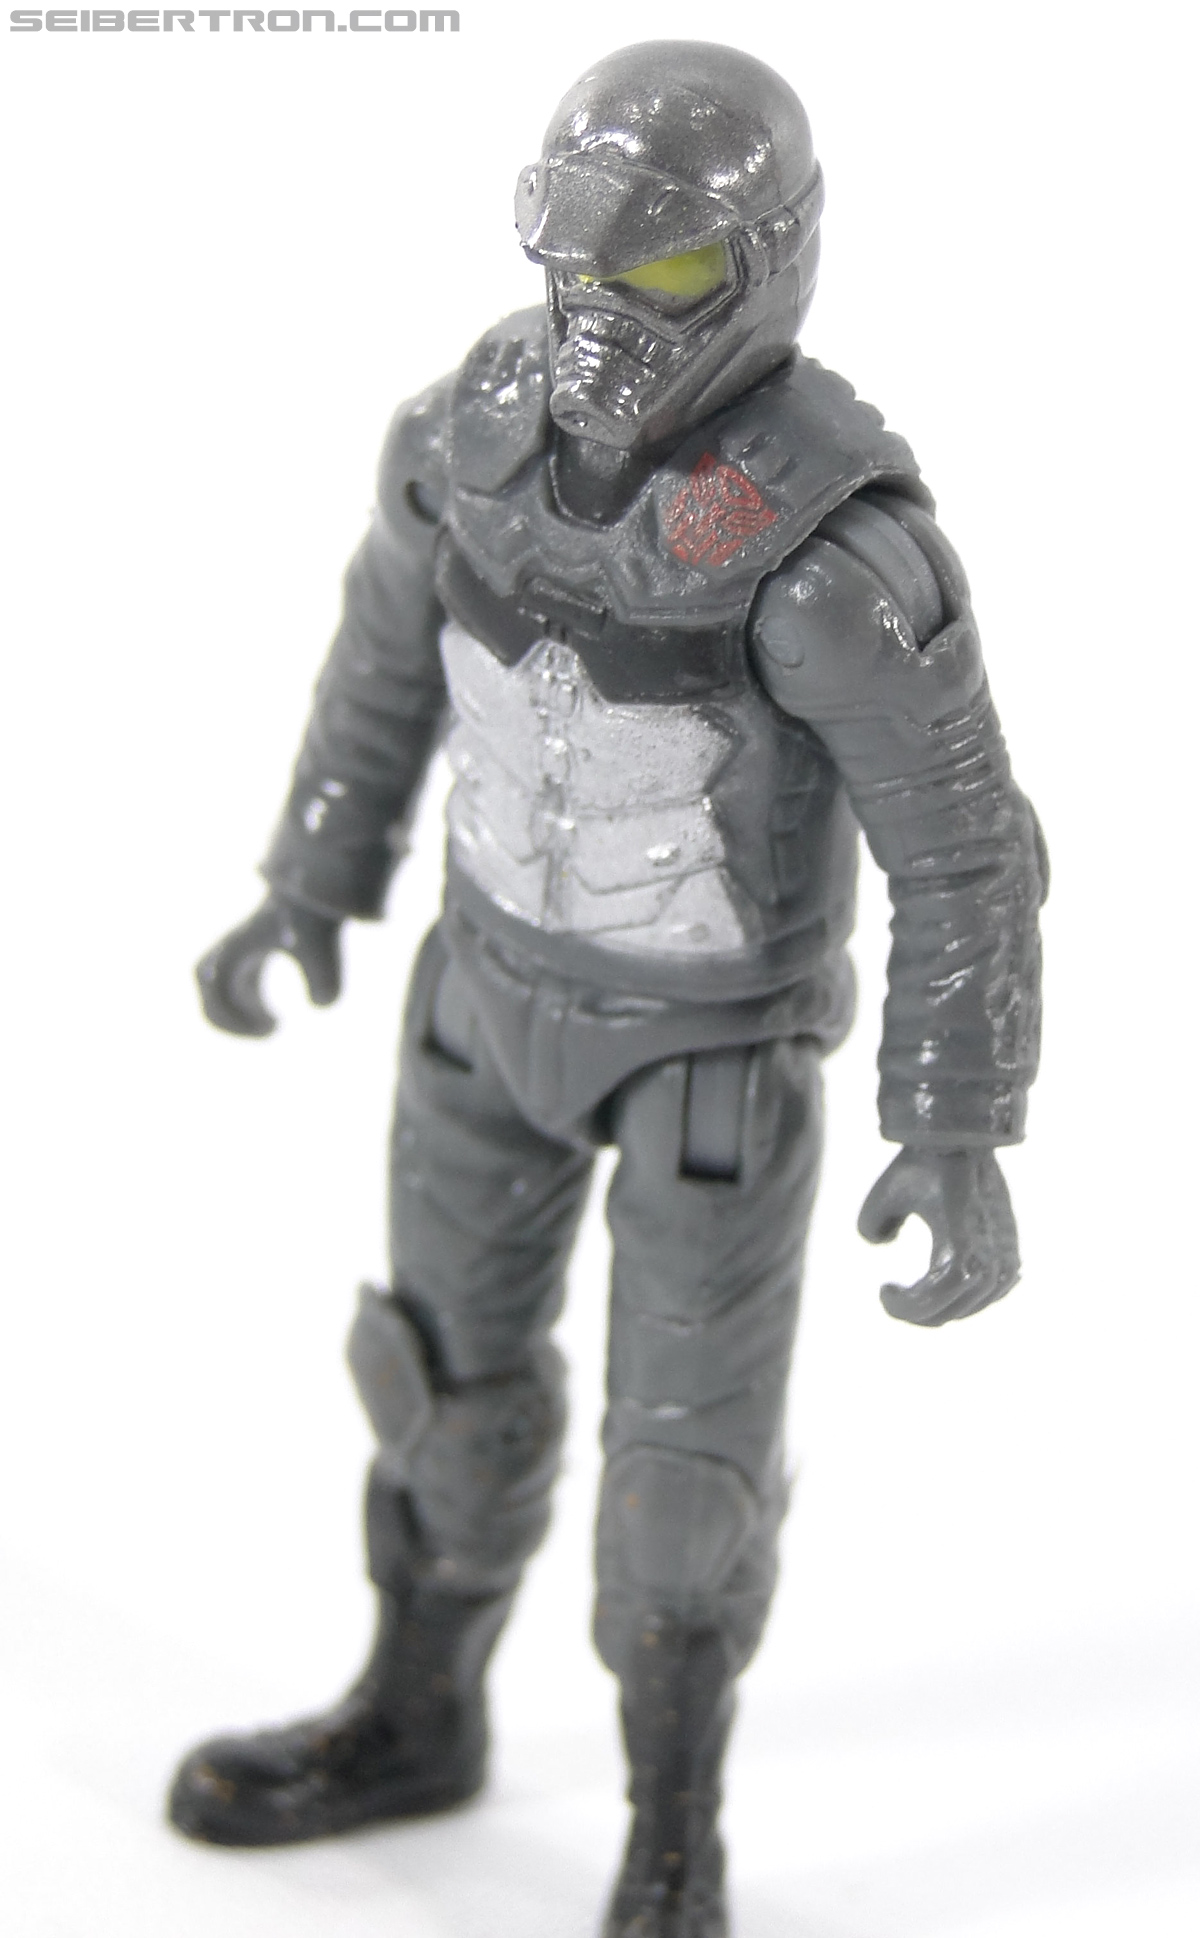 Transformers Dark of the Moon Spike Witwicky (Image #15 of 70)